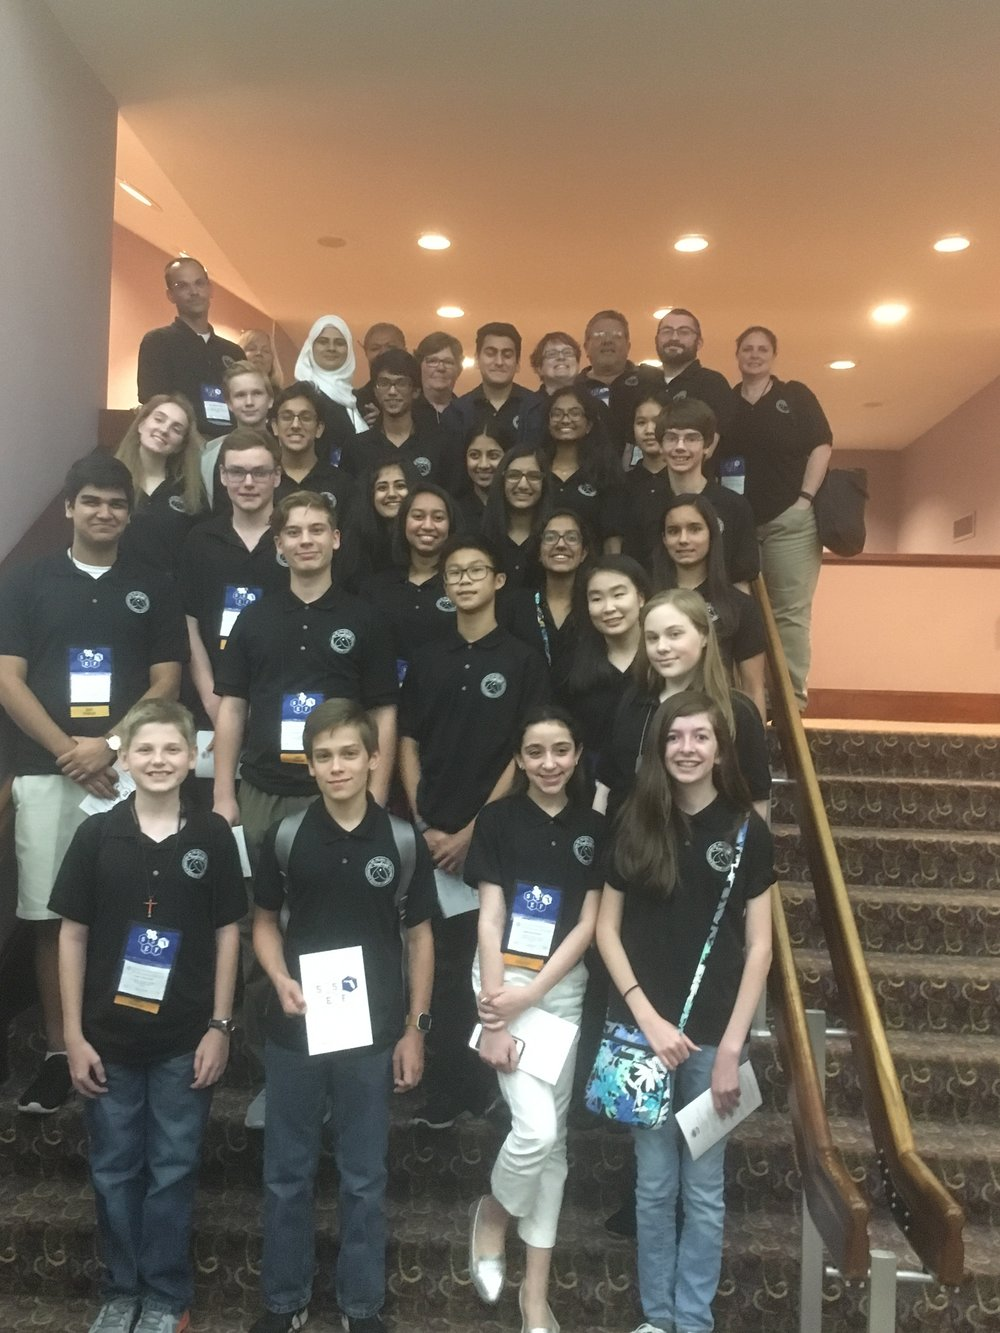 The 2017 Ying Delegation to the Florida State Science and Engineering Fair